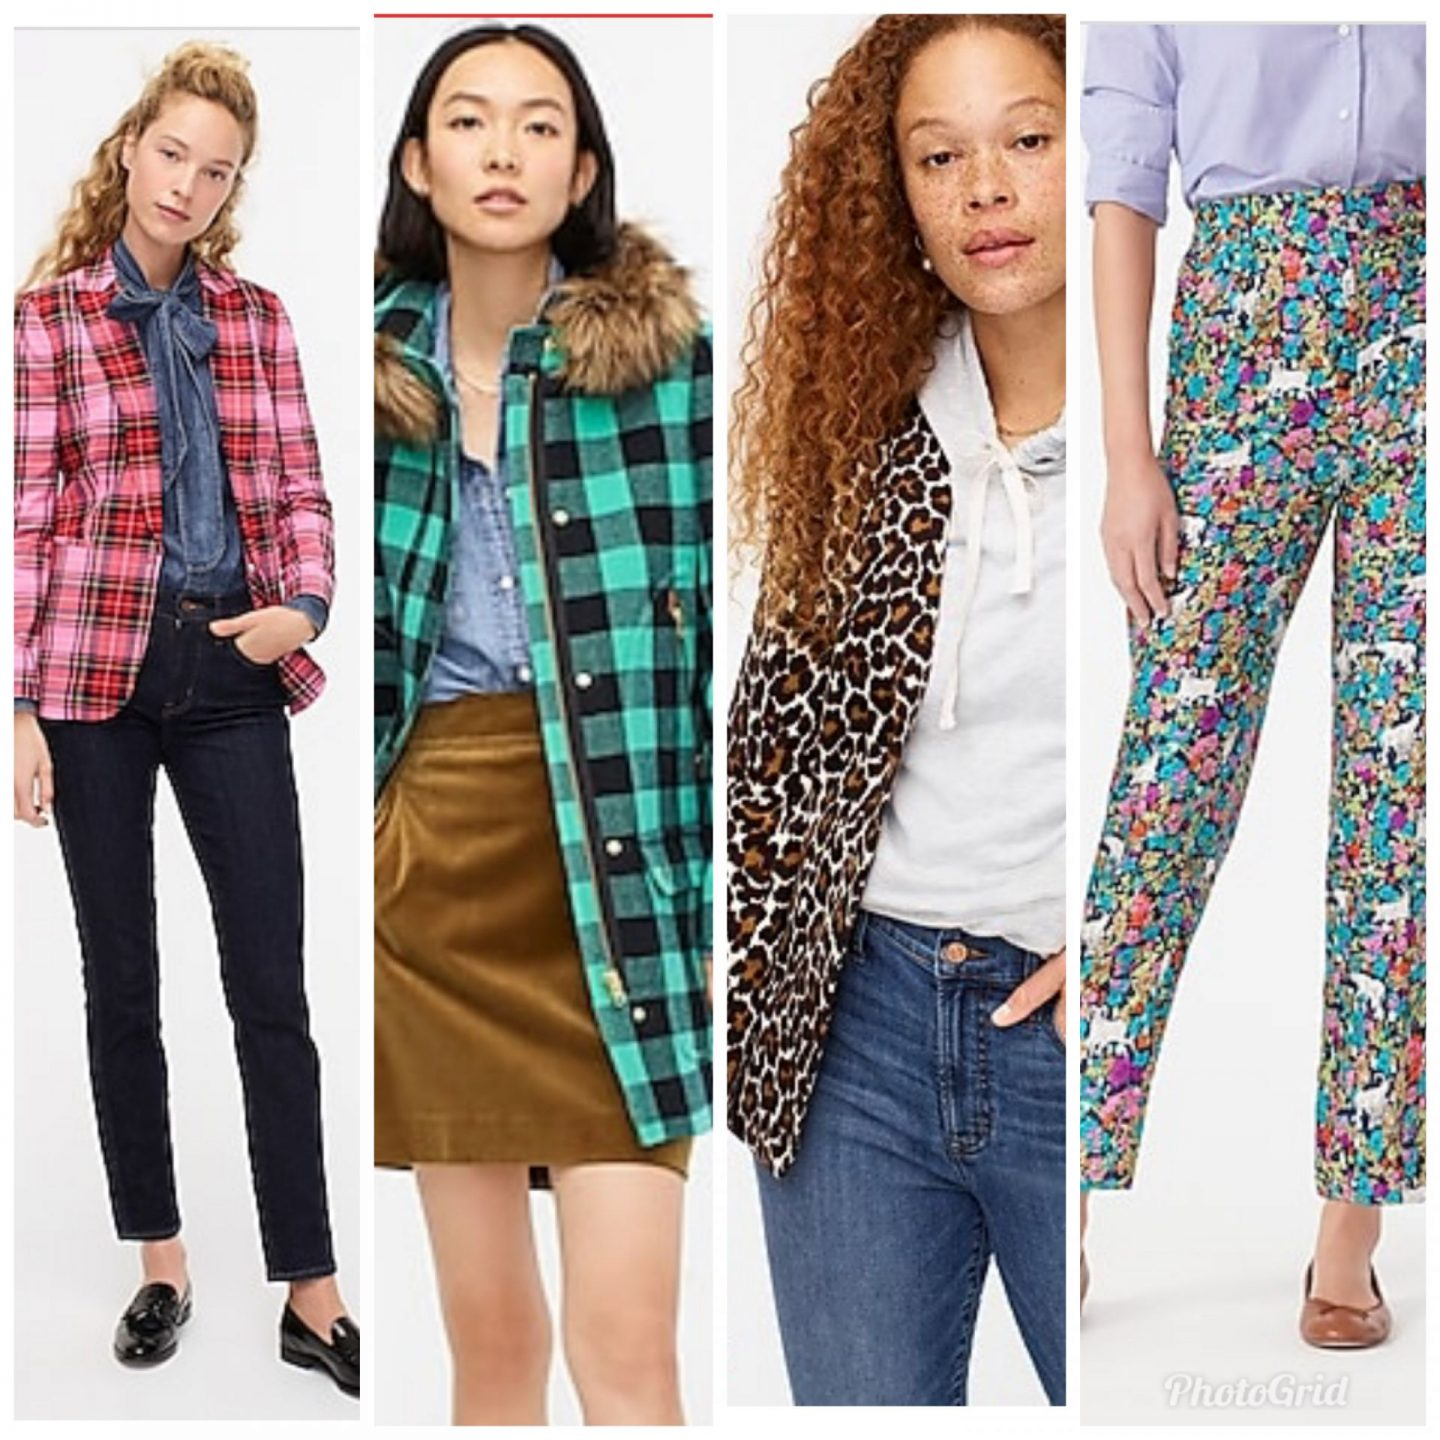 New Arrivals by popular Kentucky fashion blog, Really Rynetta: collage image of a J. Crew pink and red plaid blazer, blue and green buffalo check coat, leopard print jacket, and floral print pants.